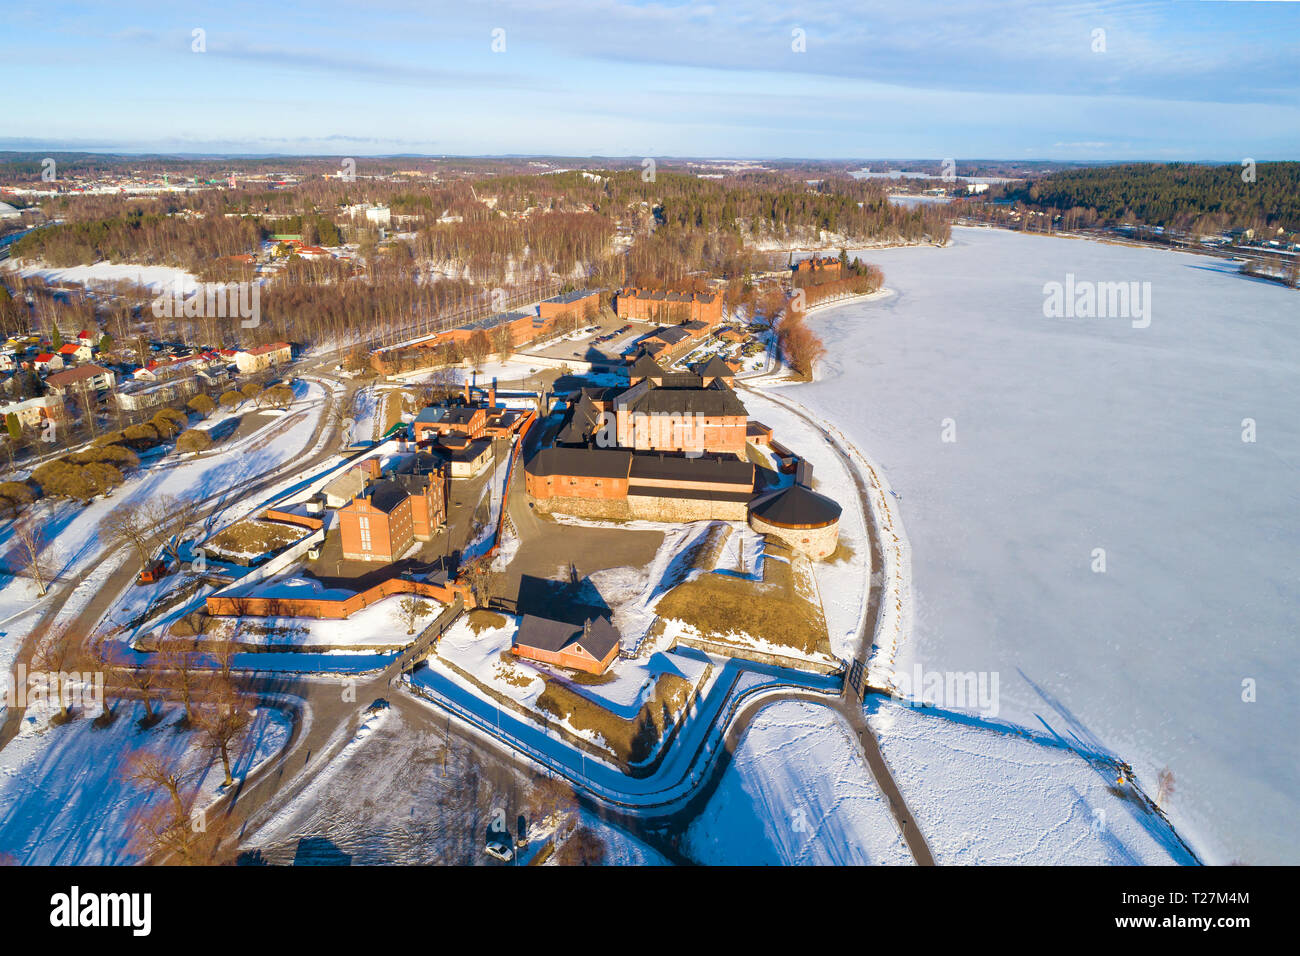 A view from the heights of the ancient fortress of the Hameenlinna city on a March morning (aerial survey). Finland Stock Photo